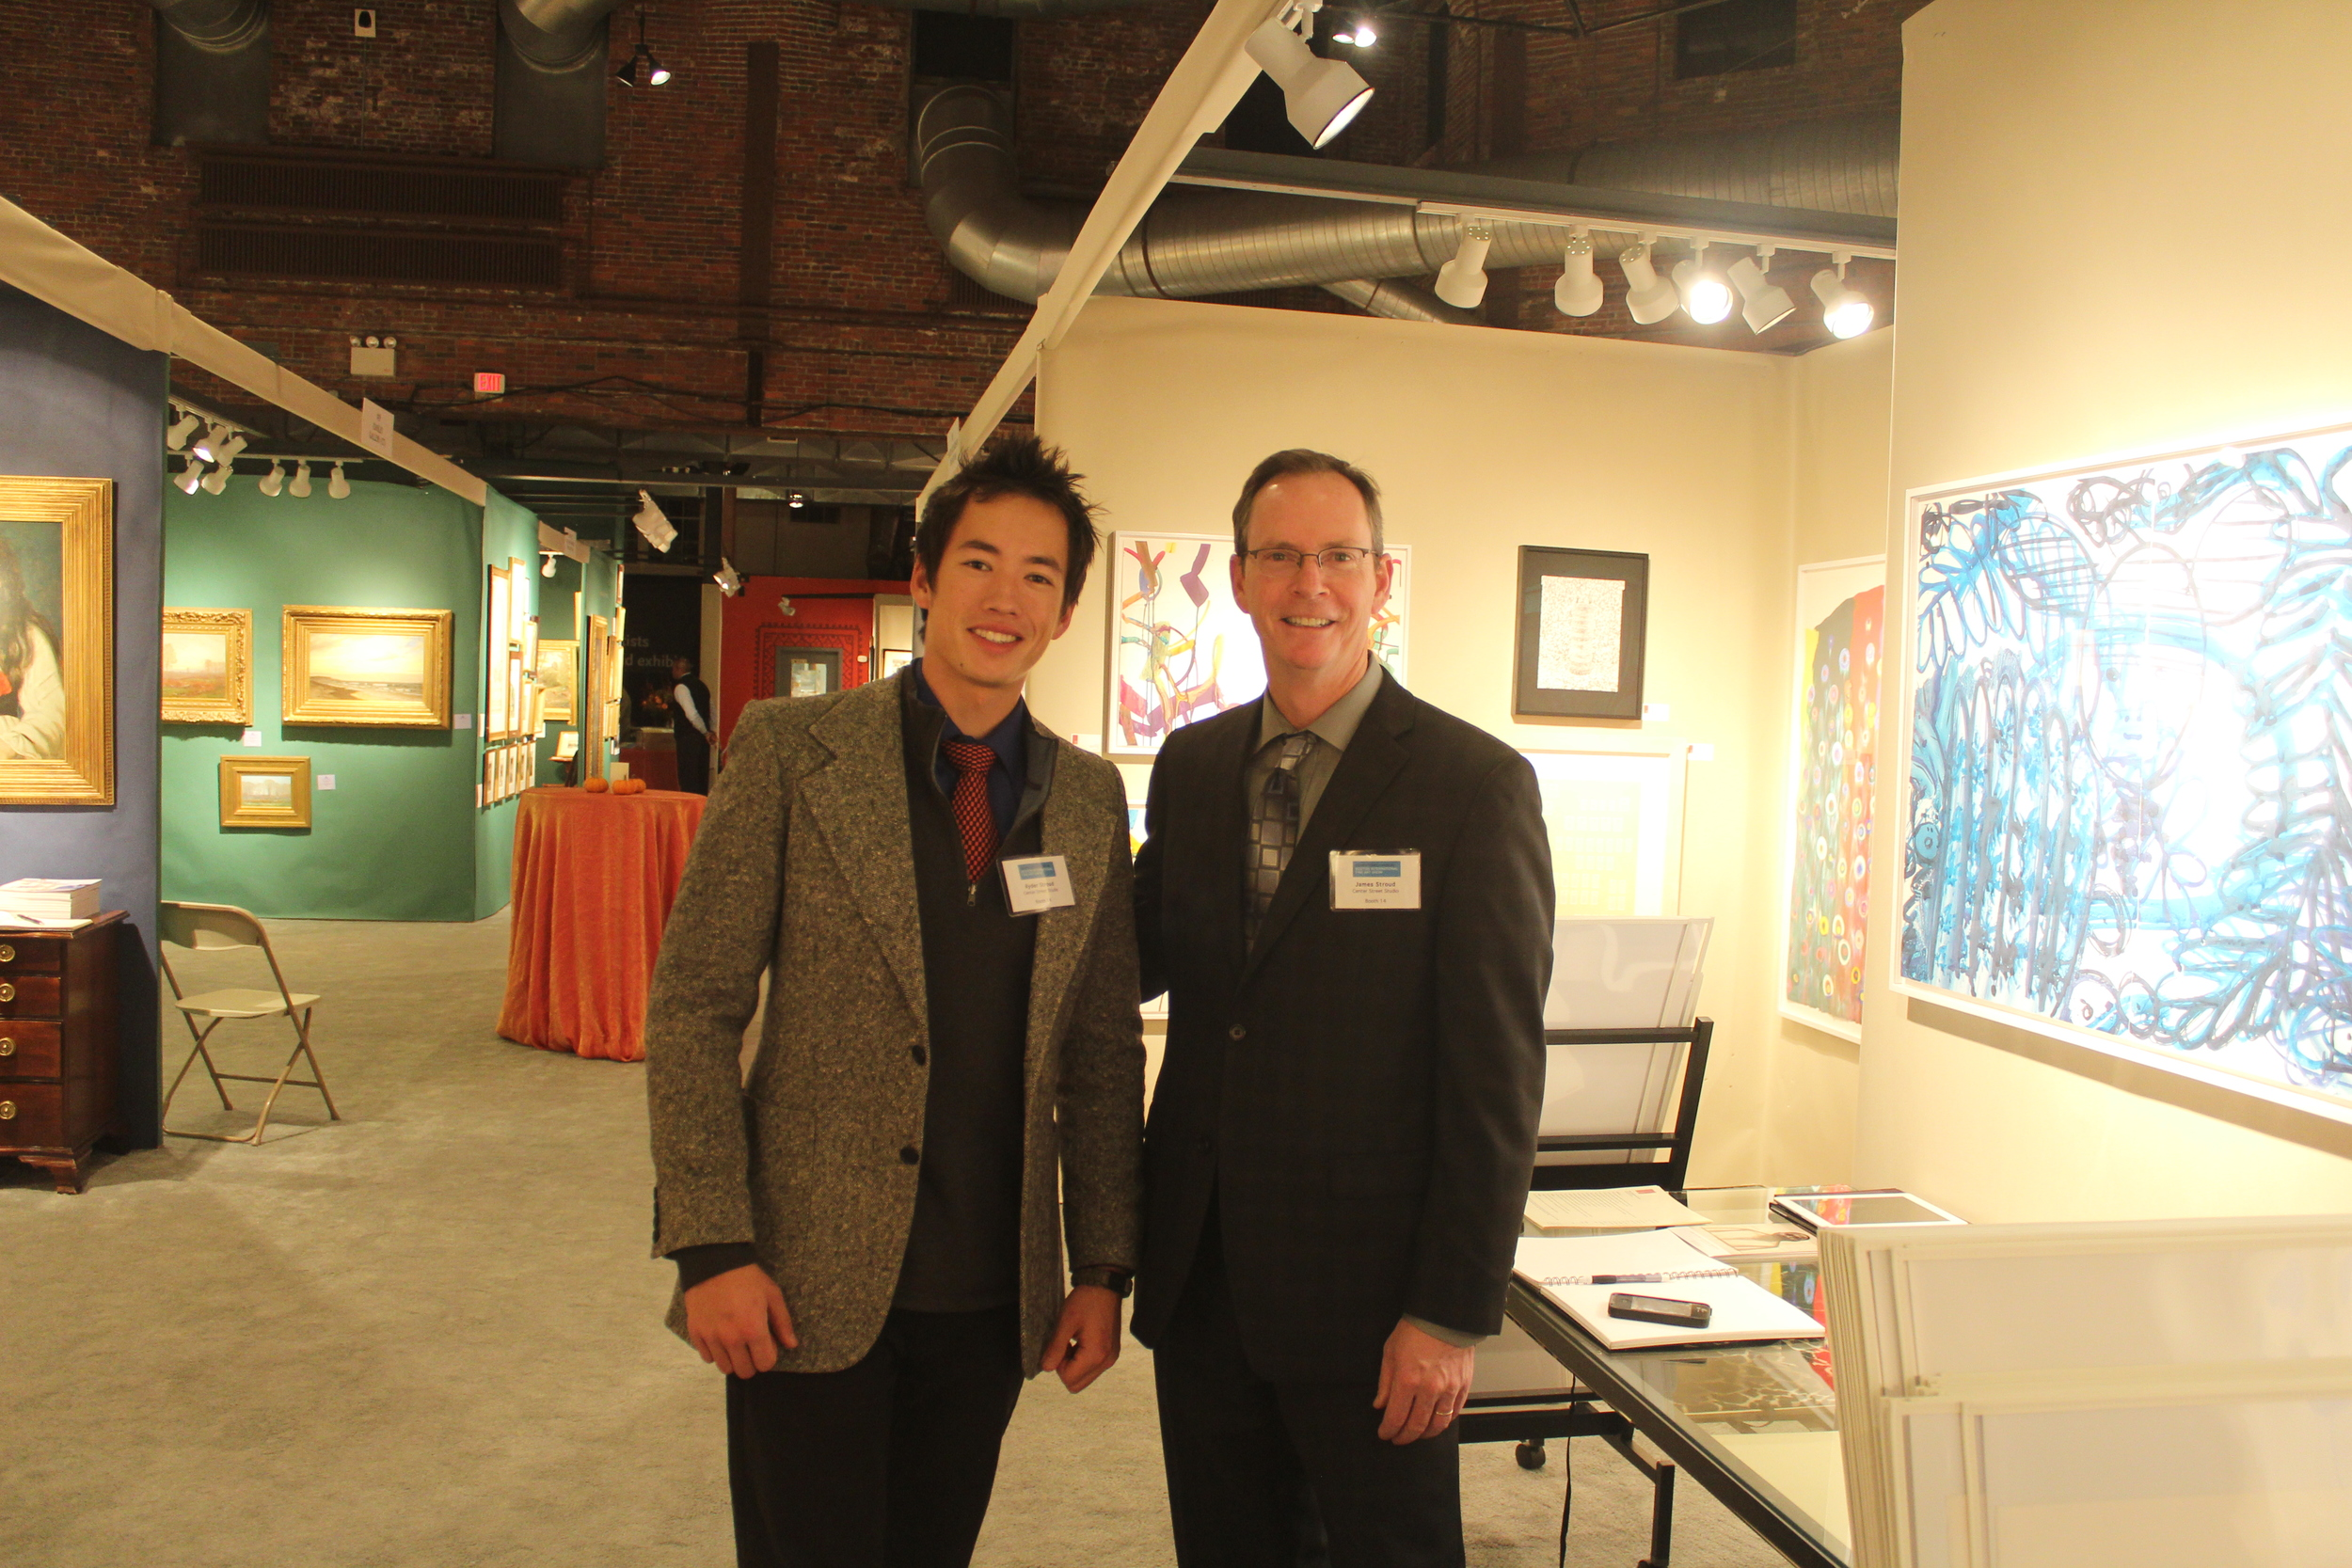 James Stroud and son Ryder Stroud at the Center Street Studio booth during the 2013 Boston International Fine Art Show (BIFAS).